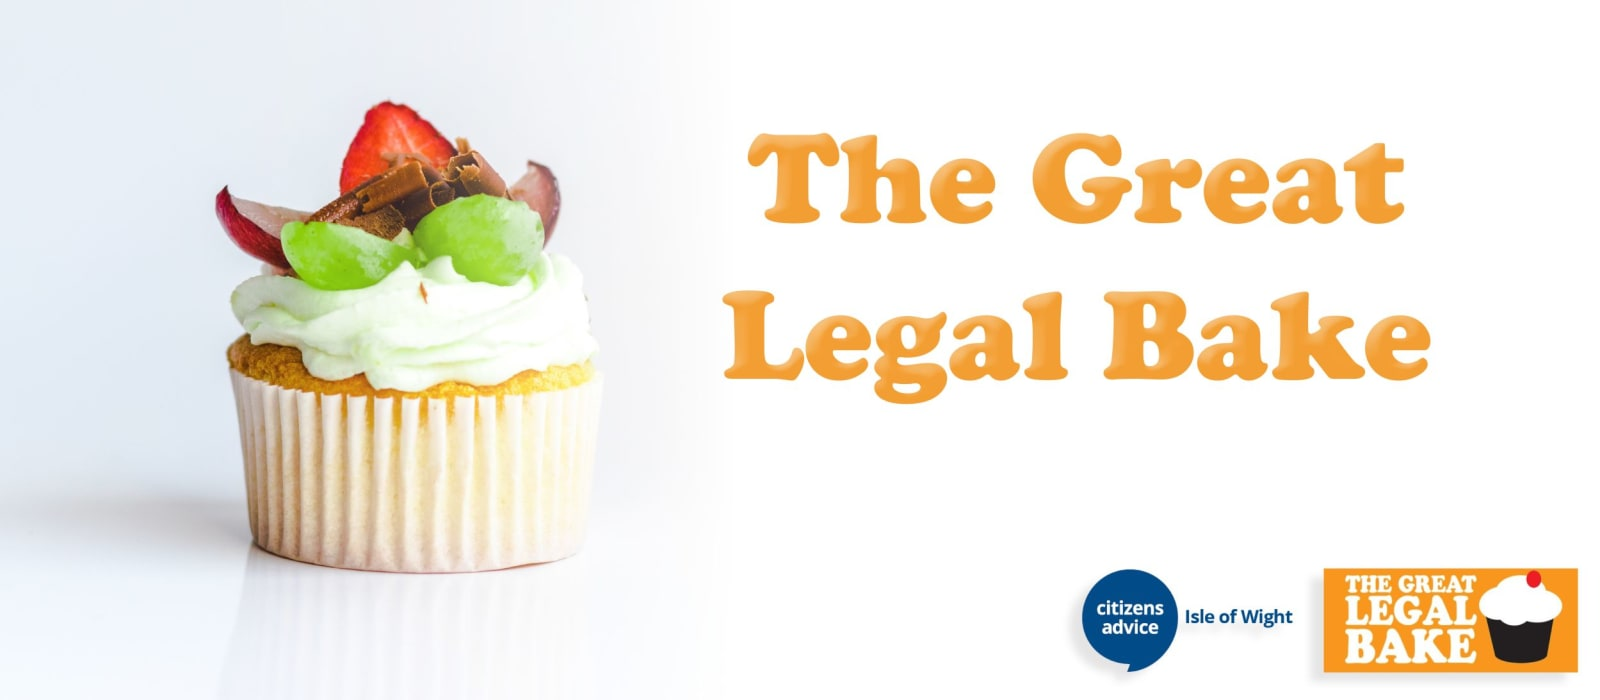 We Took Part In The Great Legal Bake 2020!